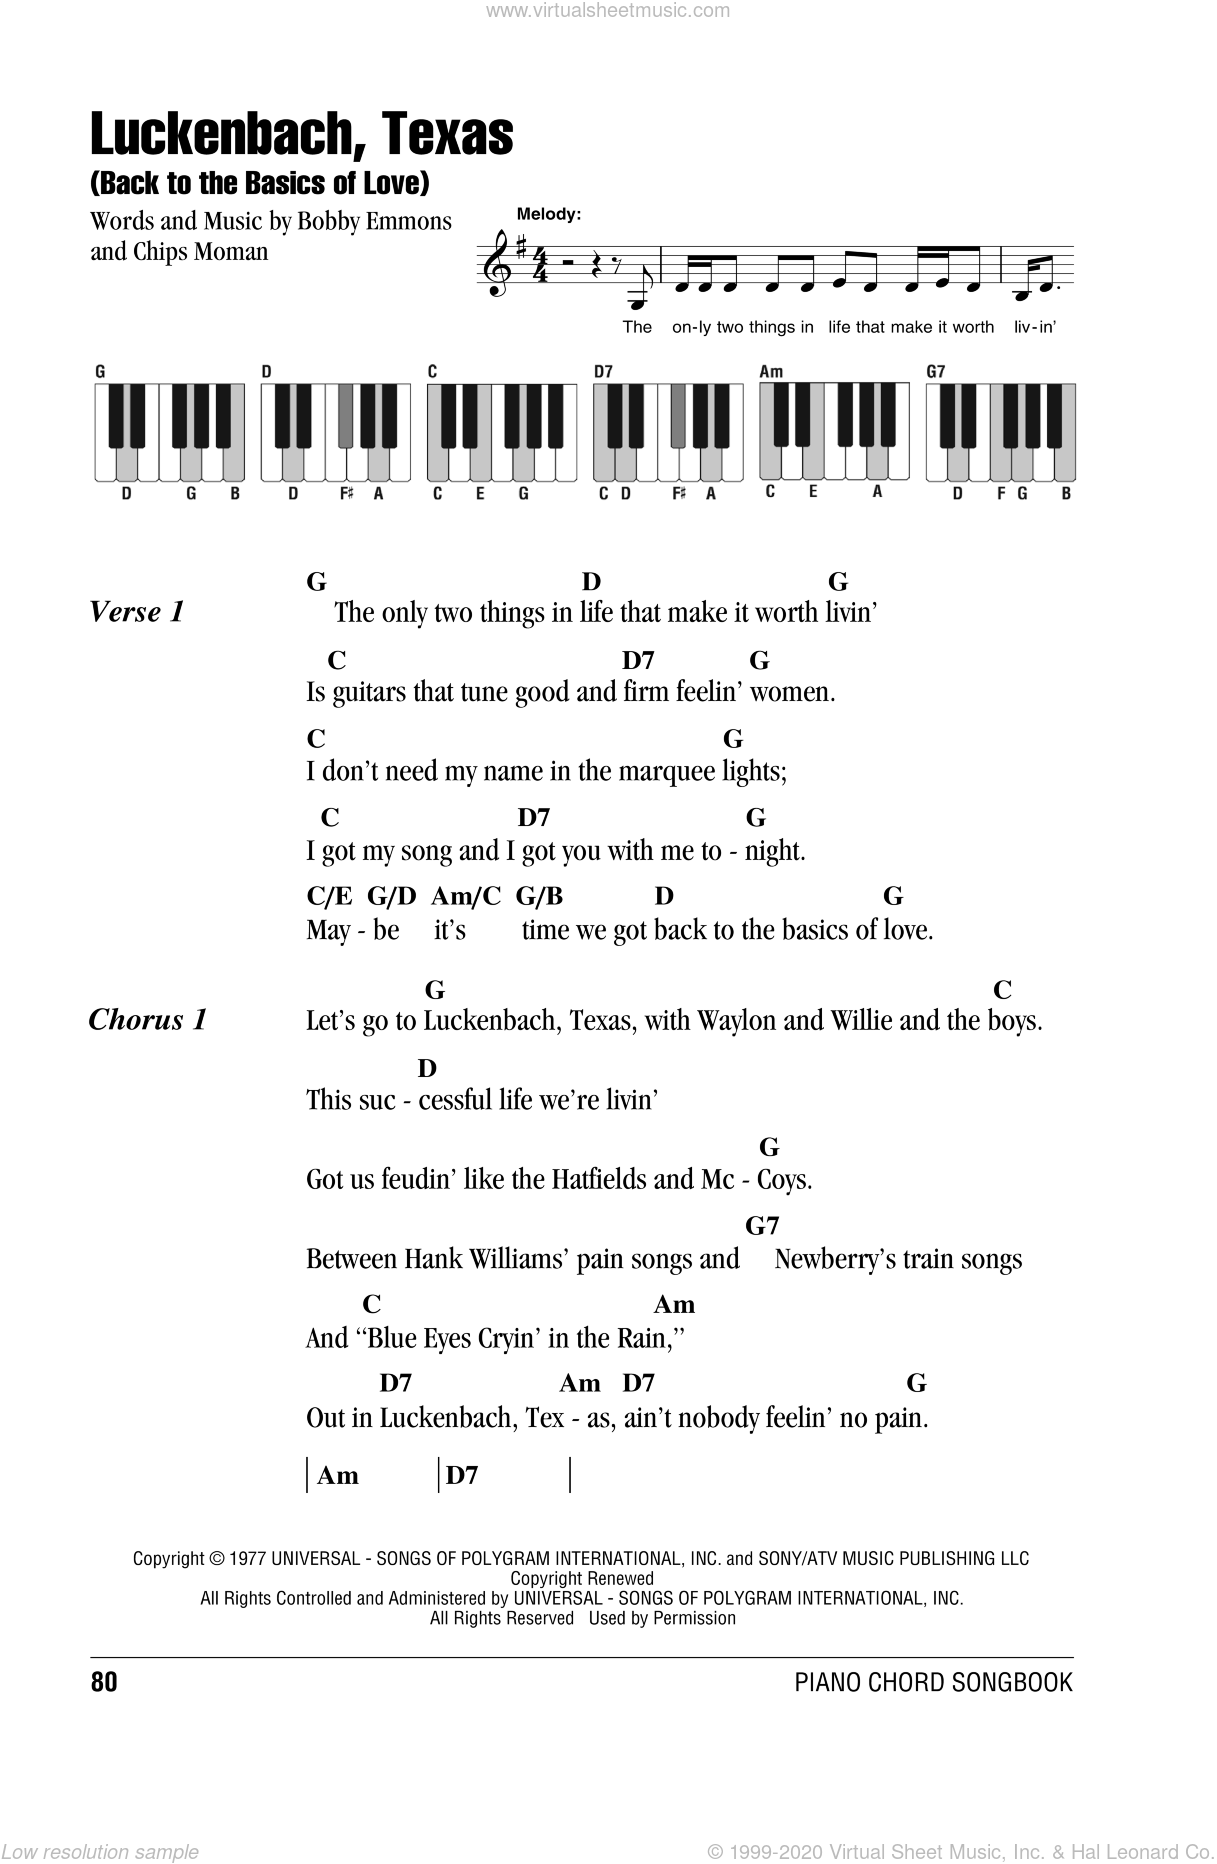 Luckenbach, Texas (Back To The Basics Of Love) sheet music for piano solo (chords, lyrics, melody) by Chips Moman